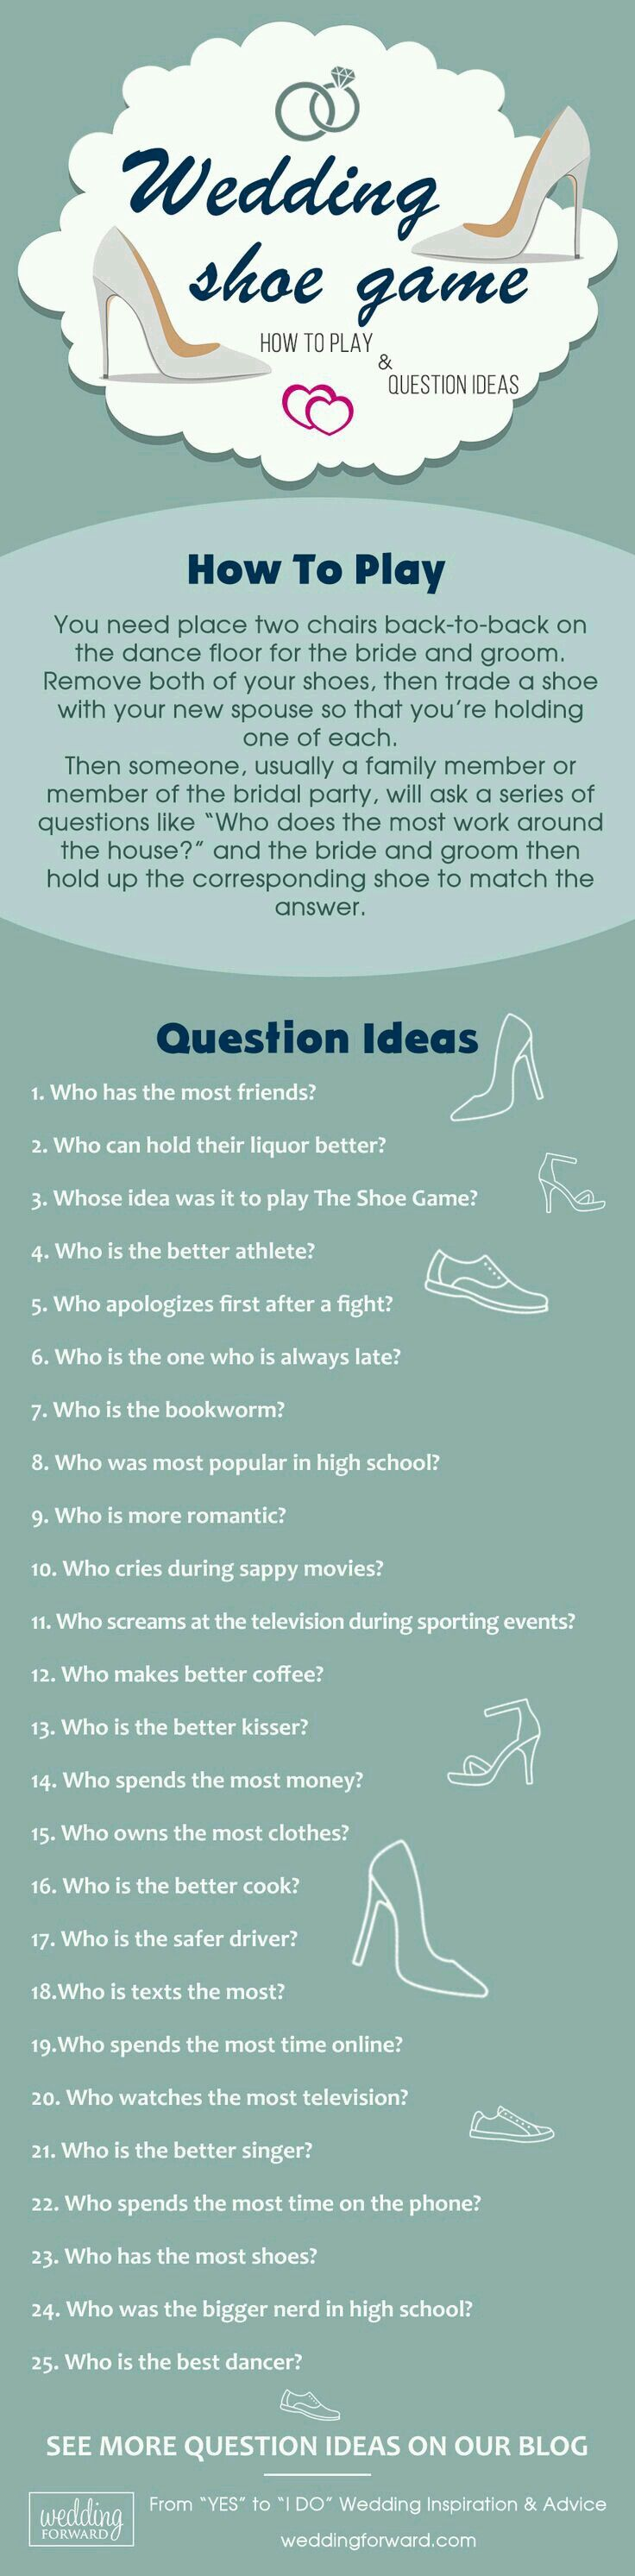 couples bridal shower games free%0A Bridal Shower Game   Bridal Shower Games   Pinterest   Bridal shower games  Bridal  showers and Gaming